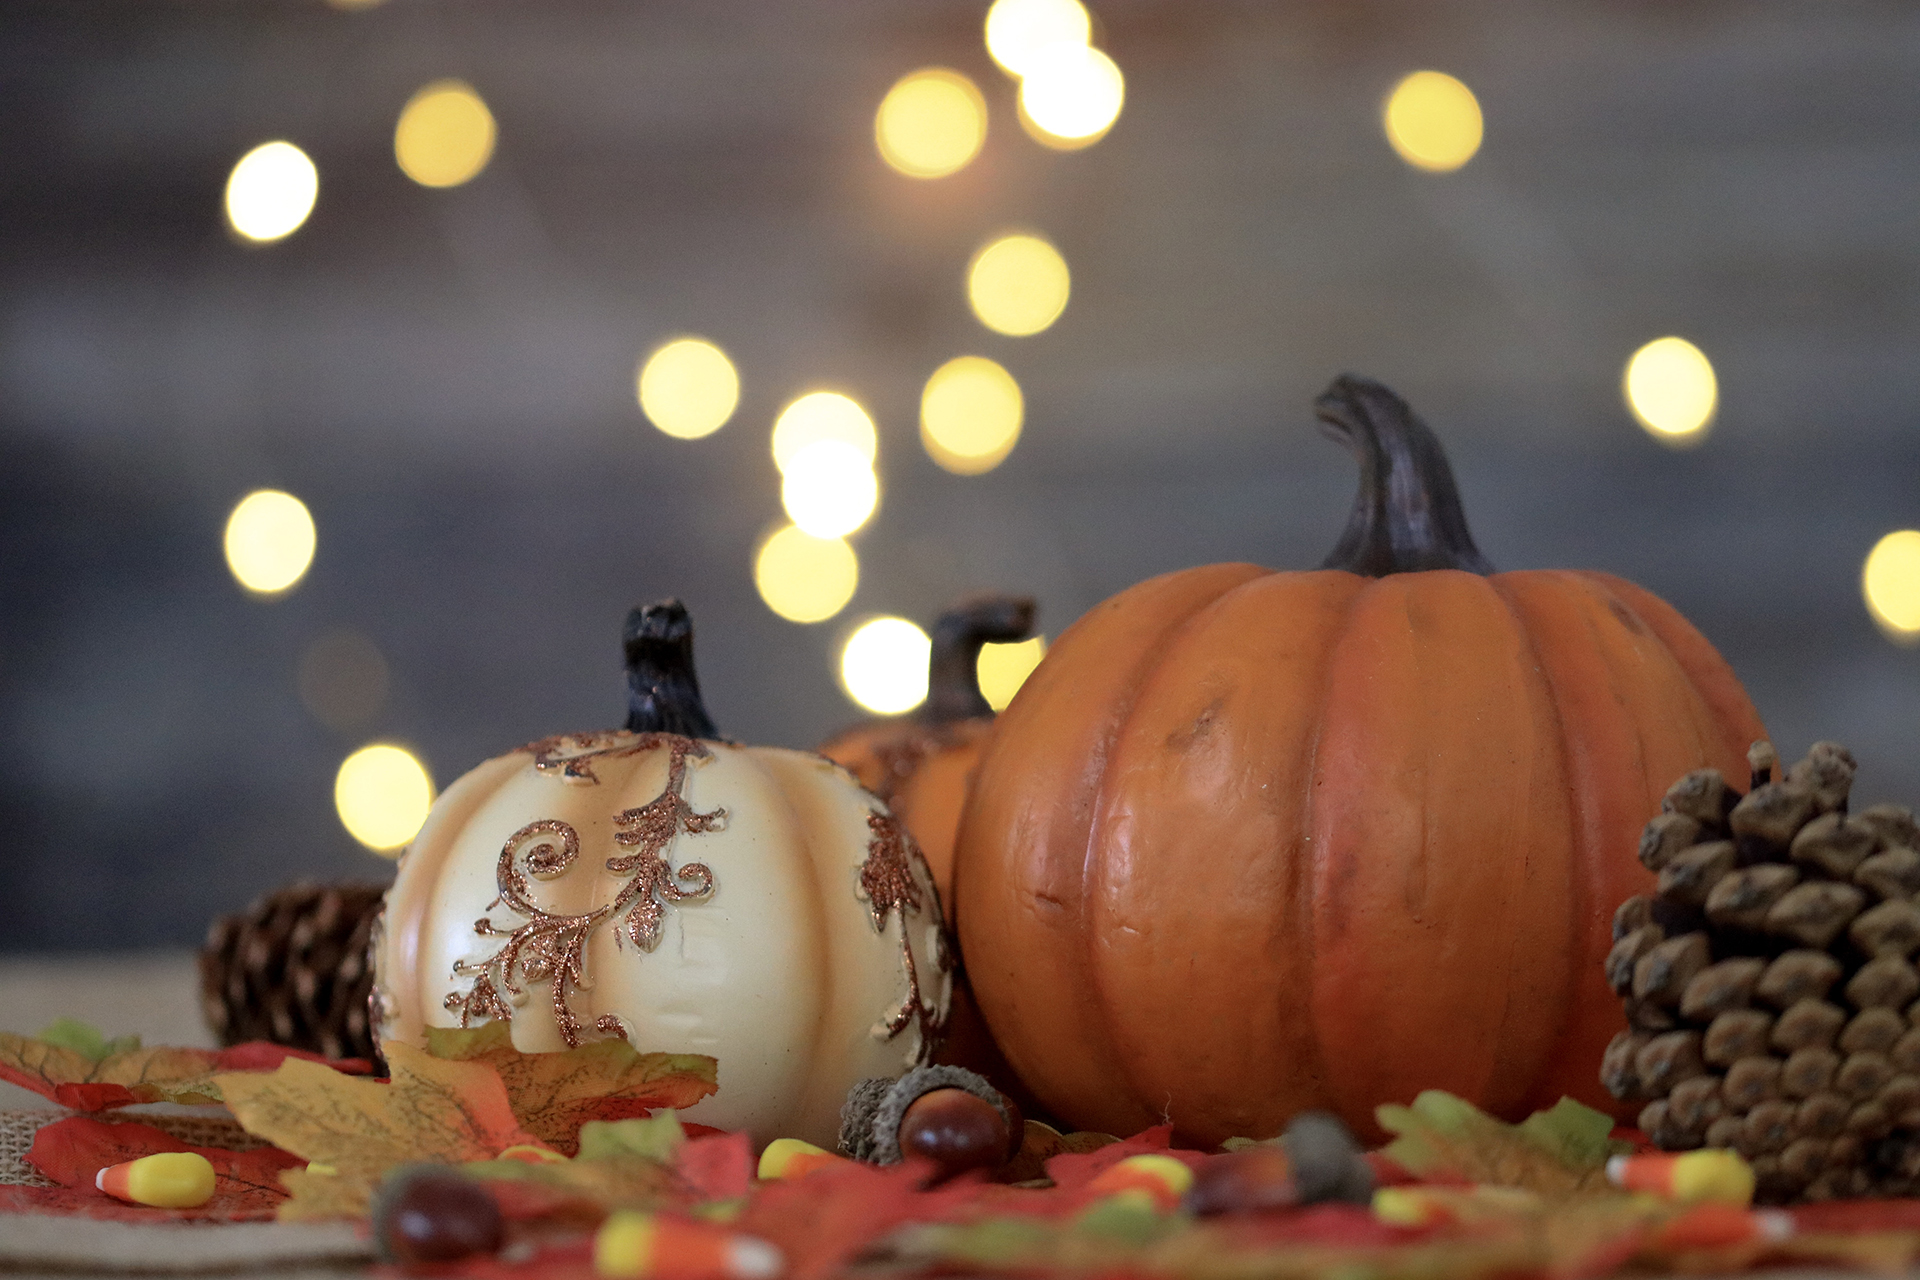 Pumpkins And Bokeh Lights